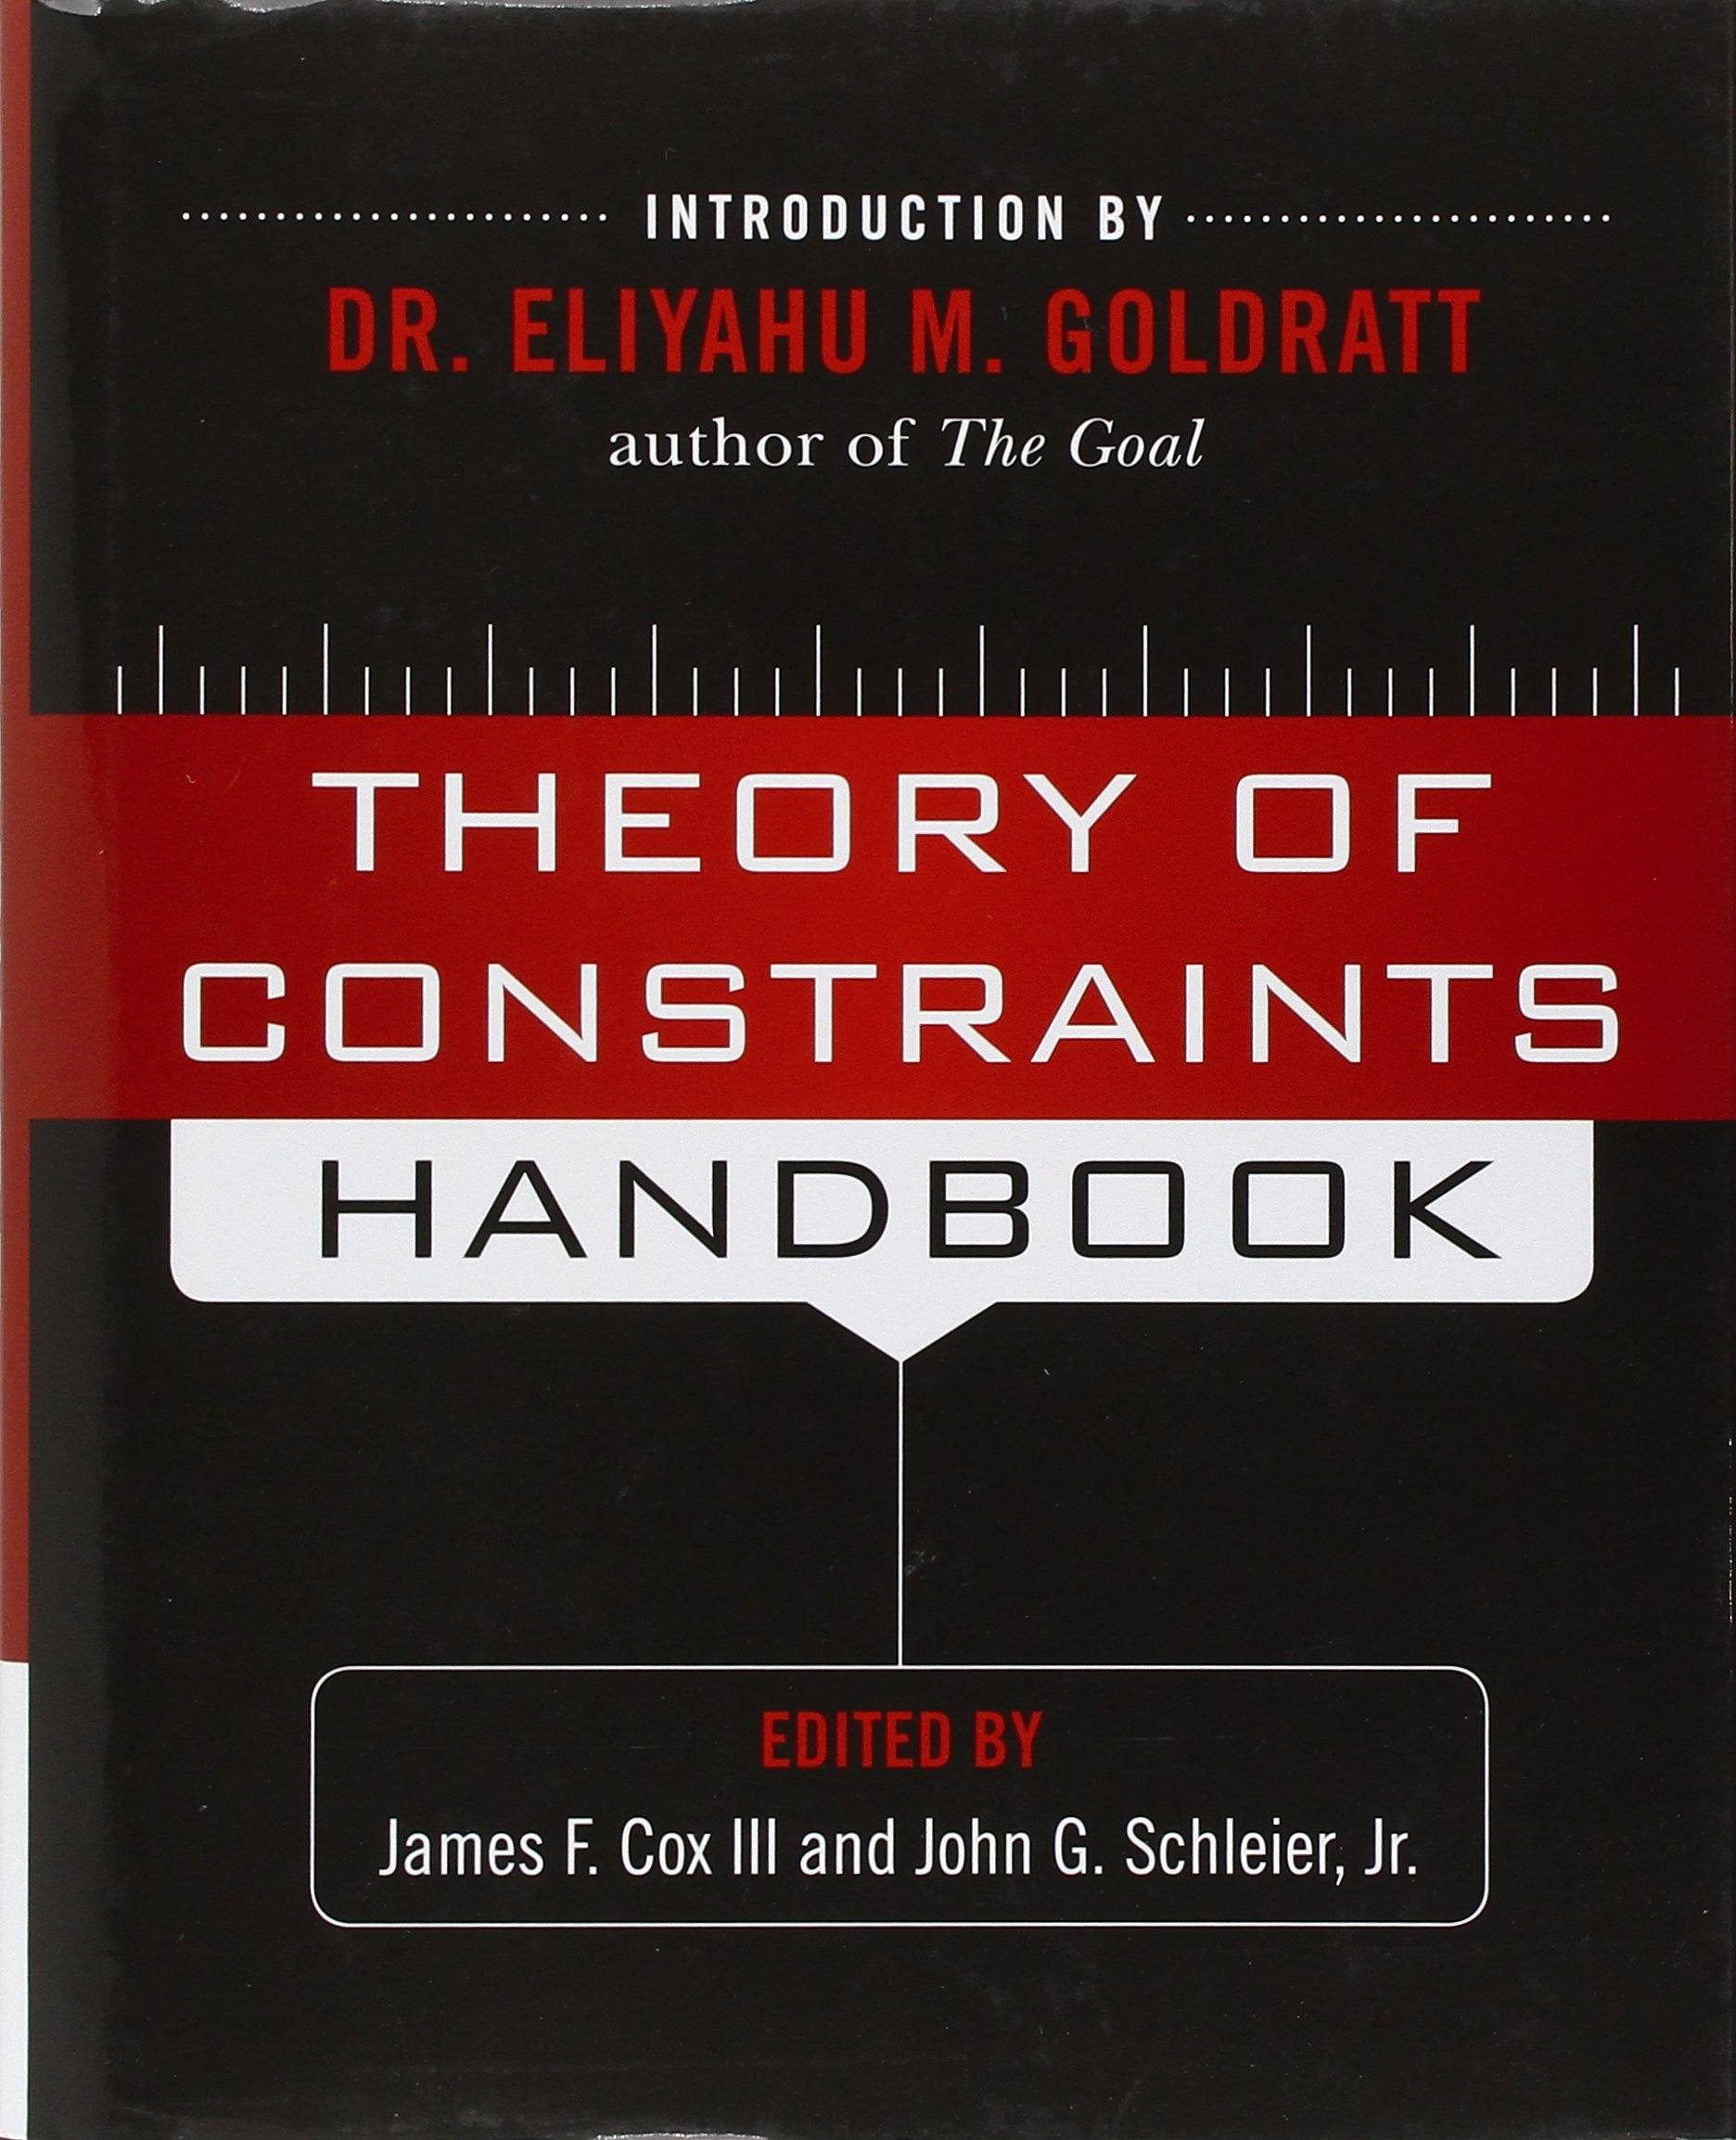 buy theory of constraints handbook mechanical engineering book buy theory of constraints handbook mechanical engineering book online at low prices in theory of constraints handbook mechanical engineering